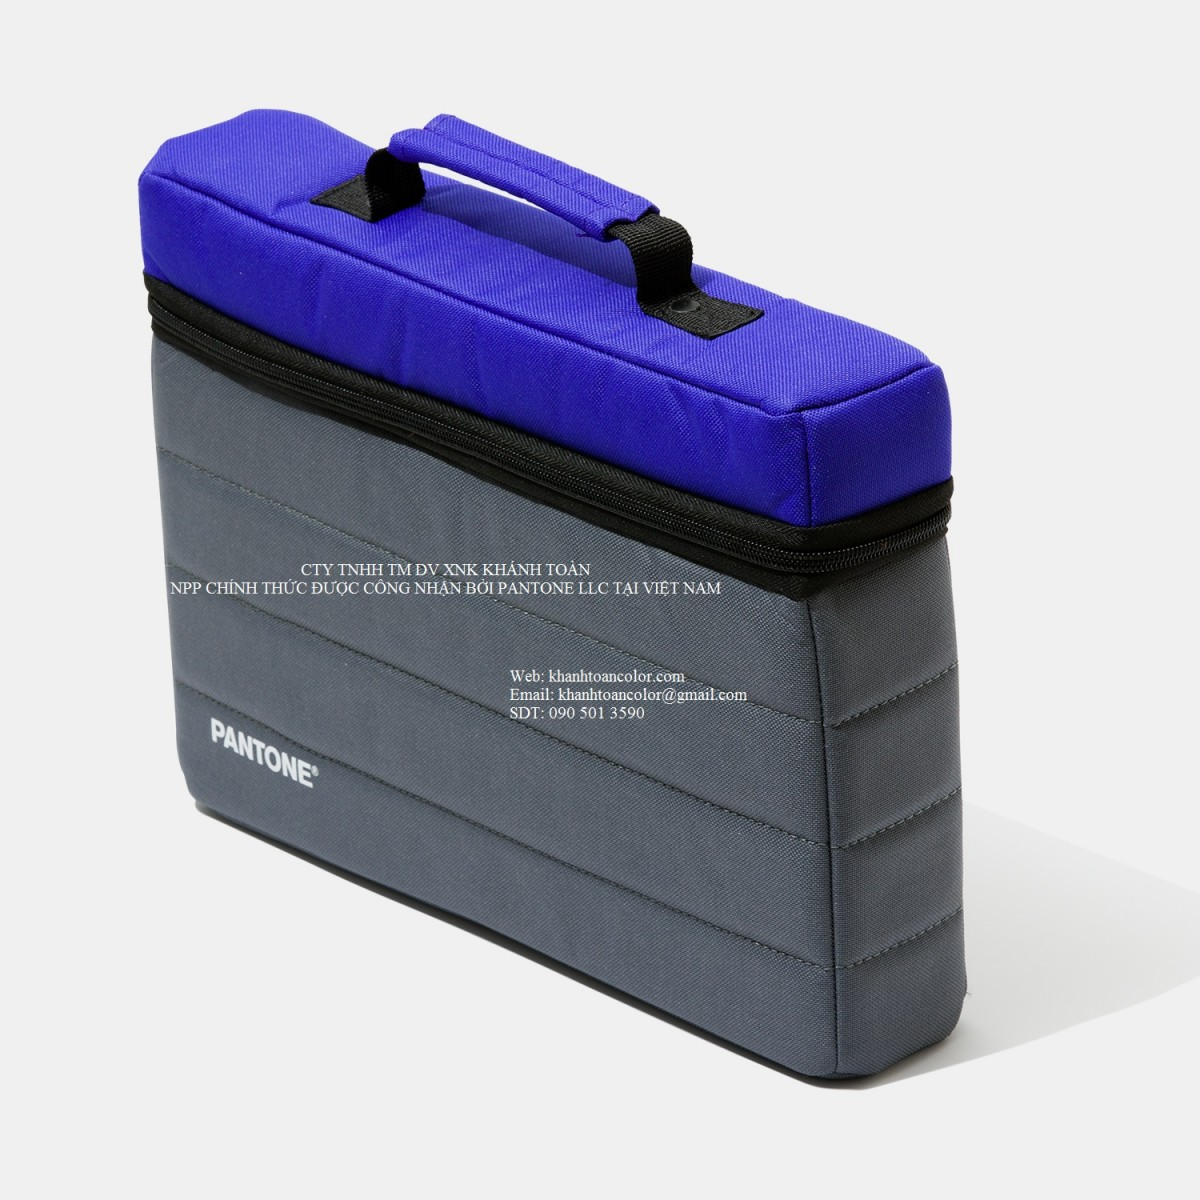 khanhtoancolor.com - Pantone Portable Guide Studio Set GPG304A (2019)(2)